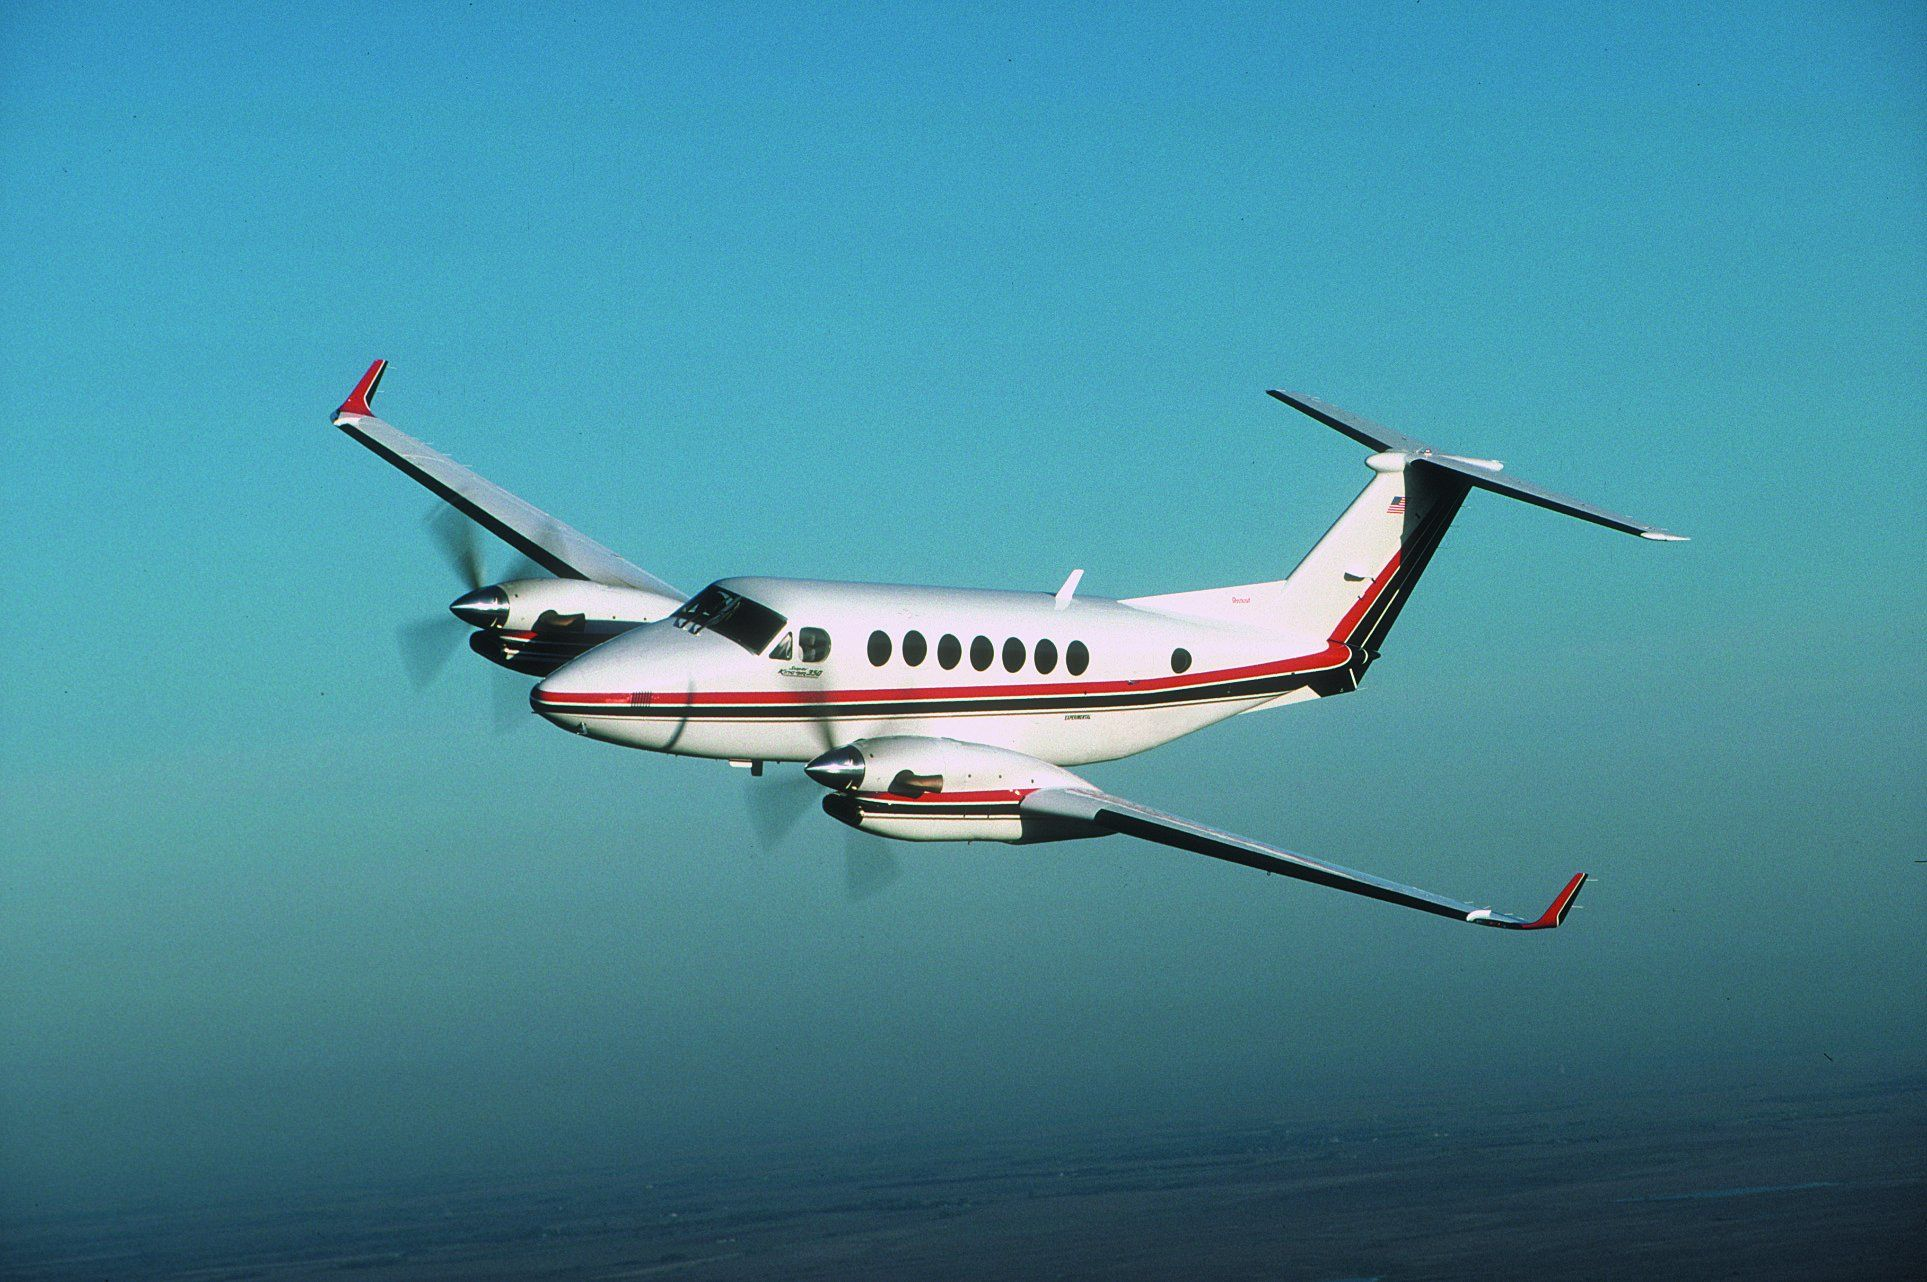 The Beechcraft King Air 350. Decades of reliability and a